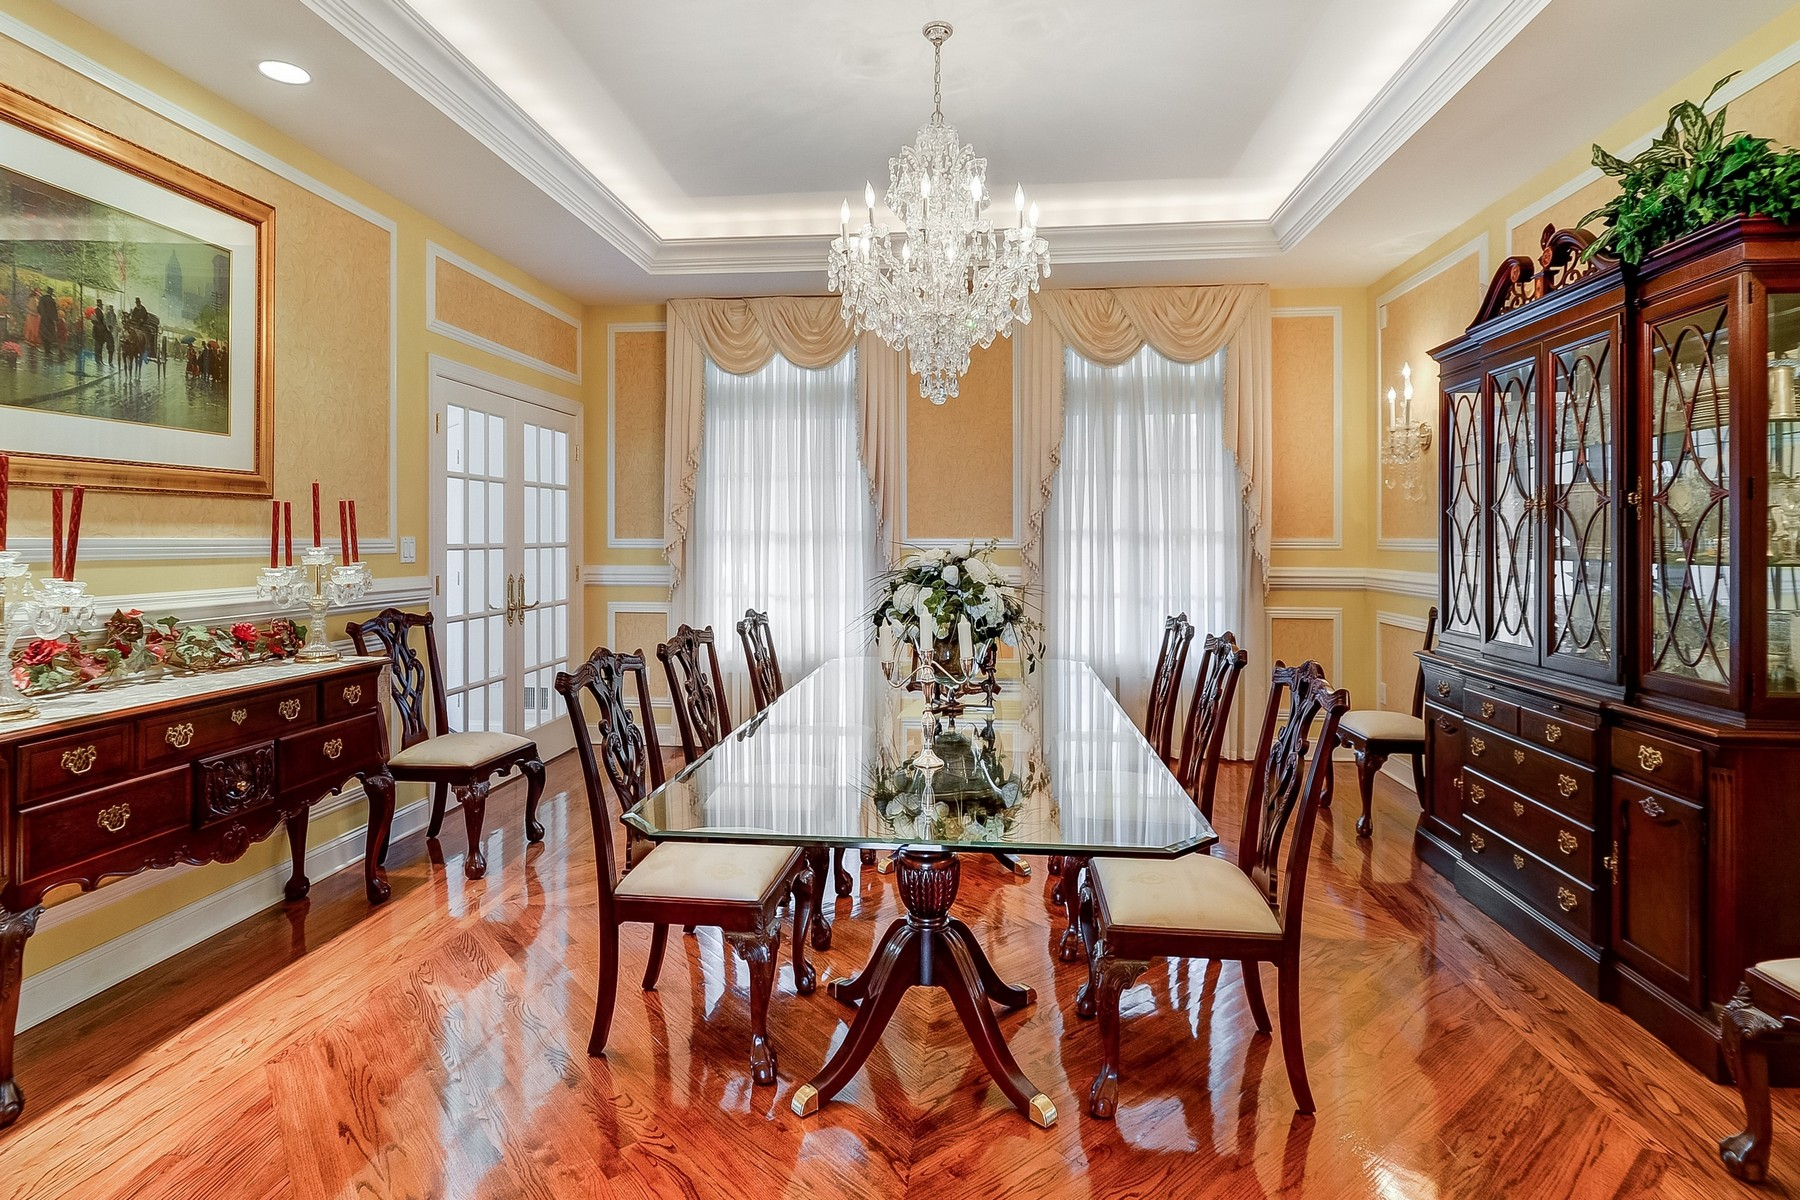 Additional photo for property listing at Stately Victorian Waterfront Estate 23 Blossom Cove Rd. Middletown, New Jersey 07748 United States